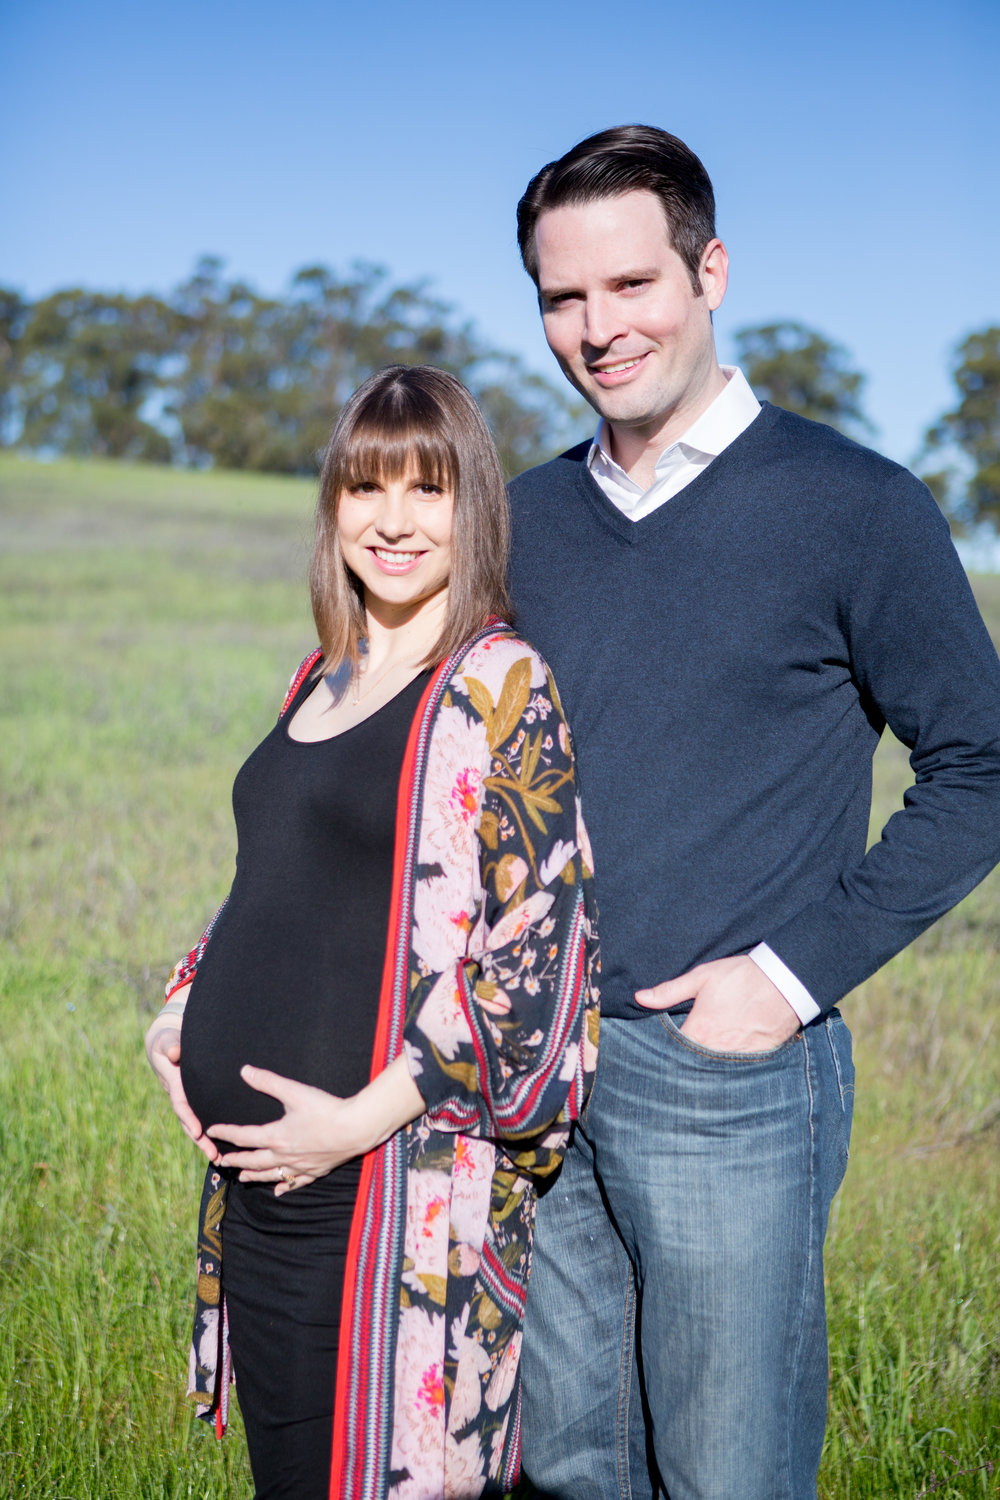 Palo Alto Maternity Photography